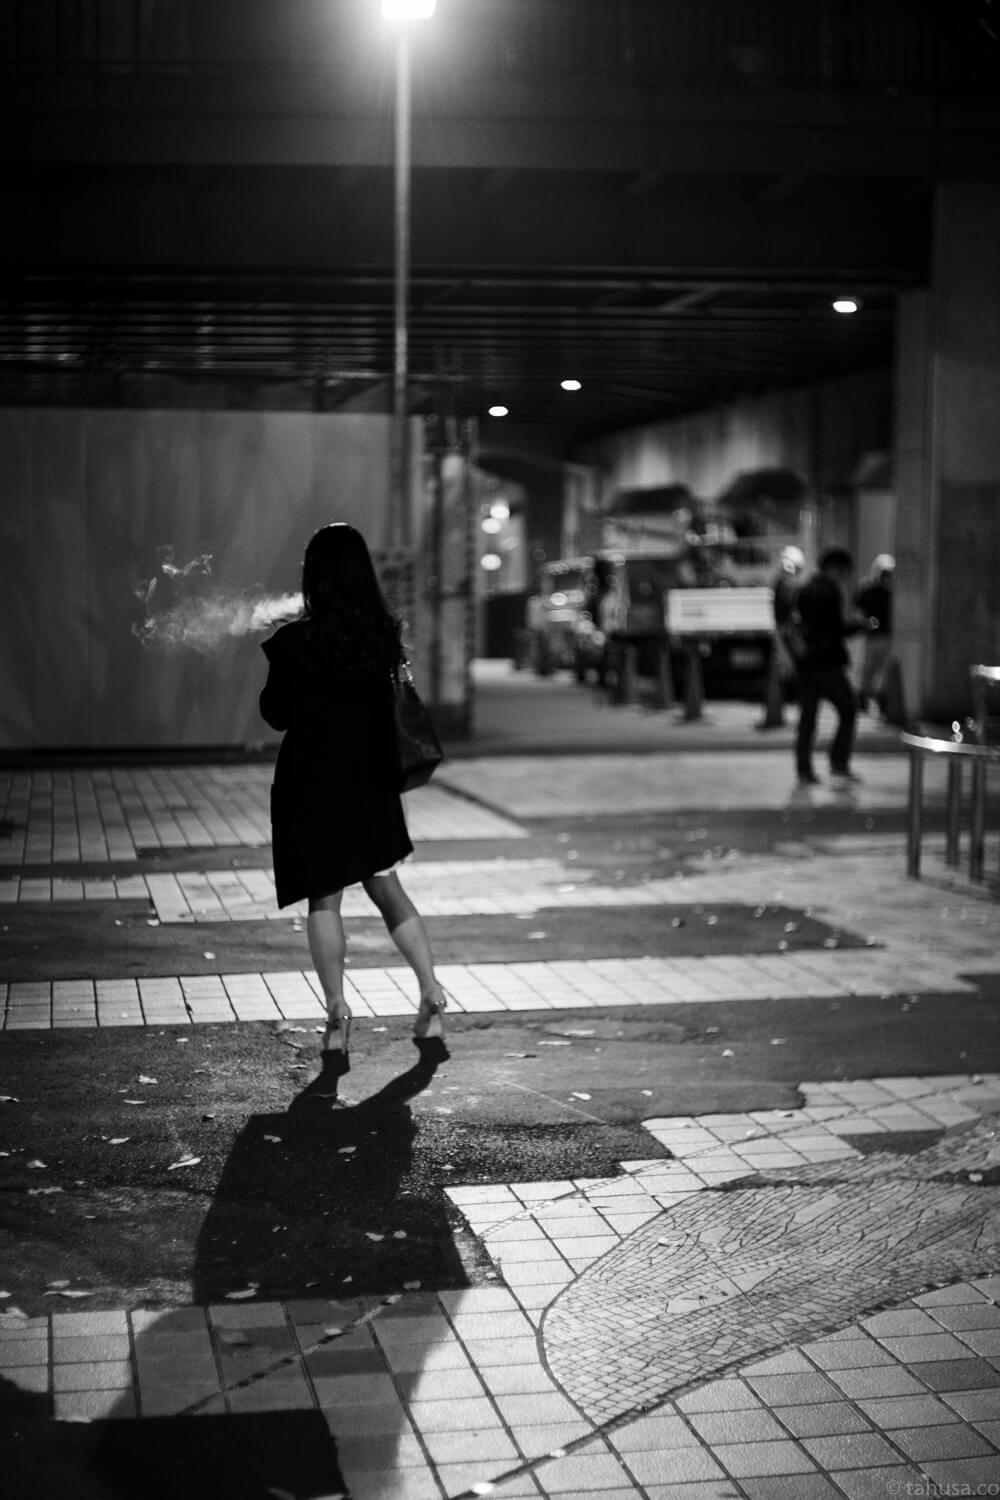 at-night-woman-was-having-a-cigarette-smoking-outside-shinjuku-district-japan-street-tokyo-streetphotography-blackandwhite-BW-B&W-japanese-travel-with-Sony-A7-A7II-digital-camera-old-nokton-voigtlander-50mm-f1.5-1.5-prominent-mount-vintage